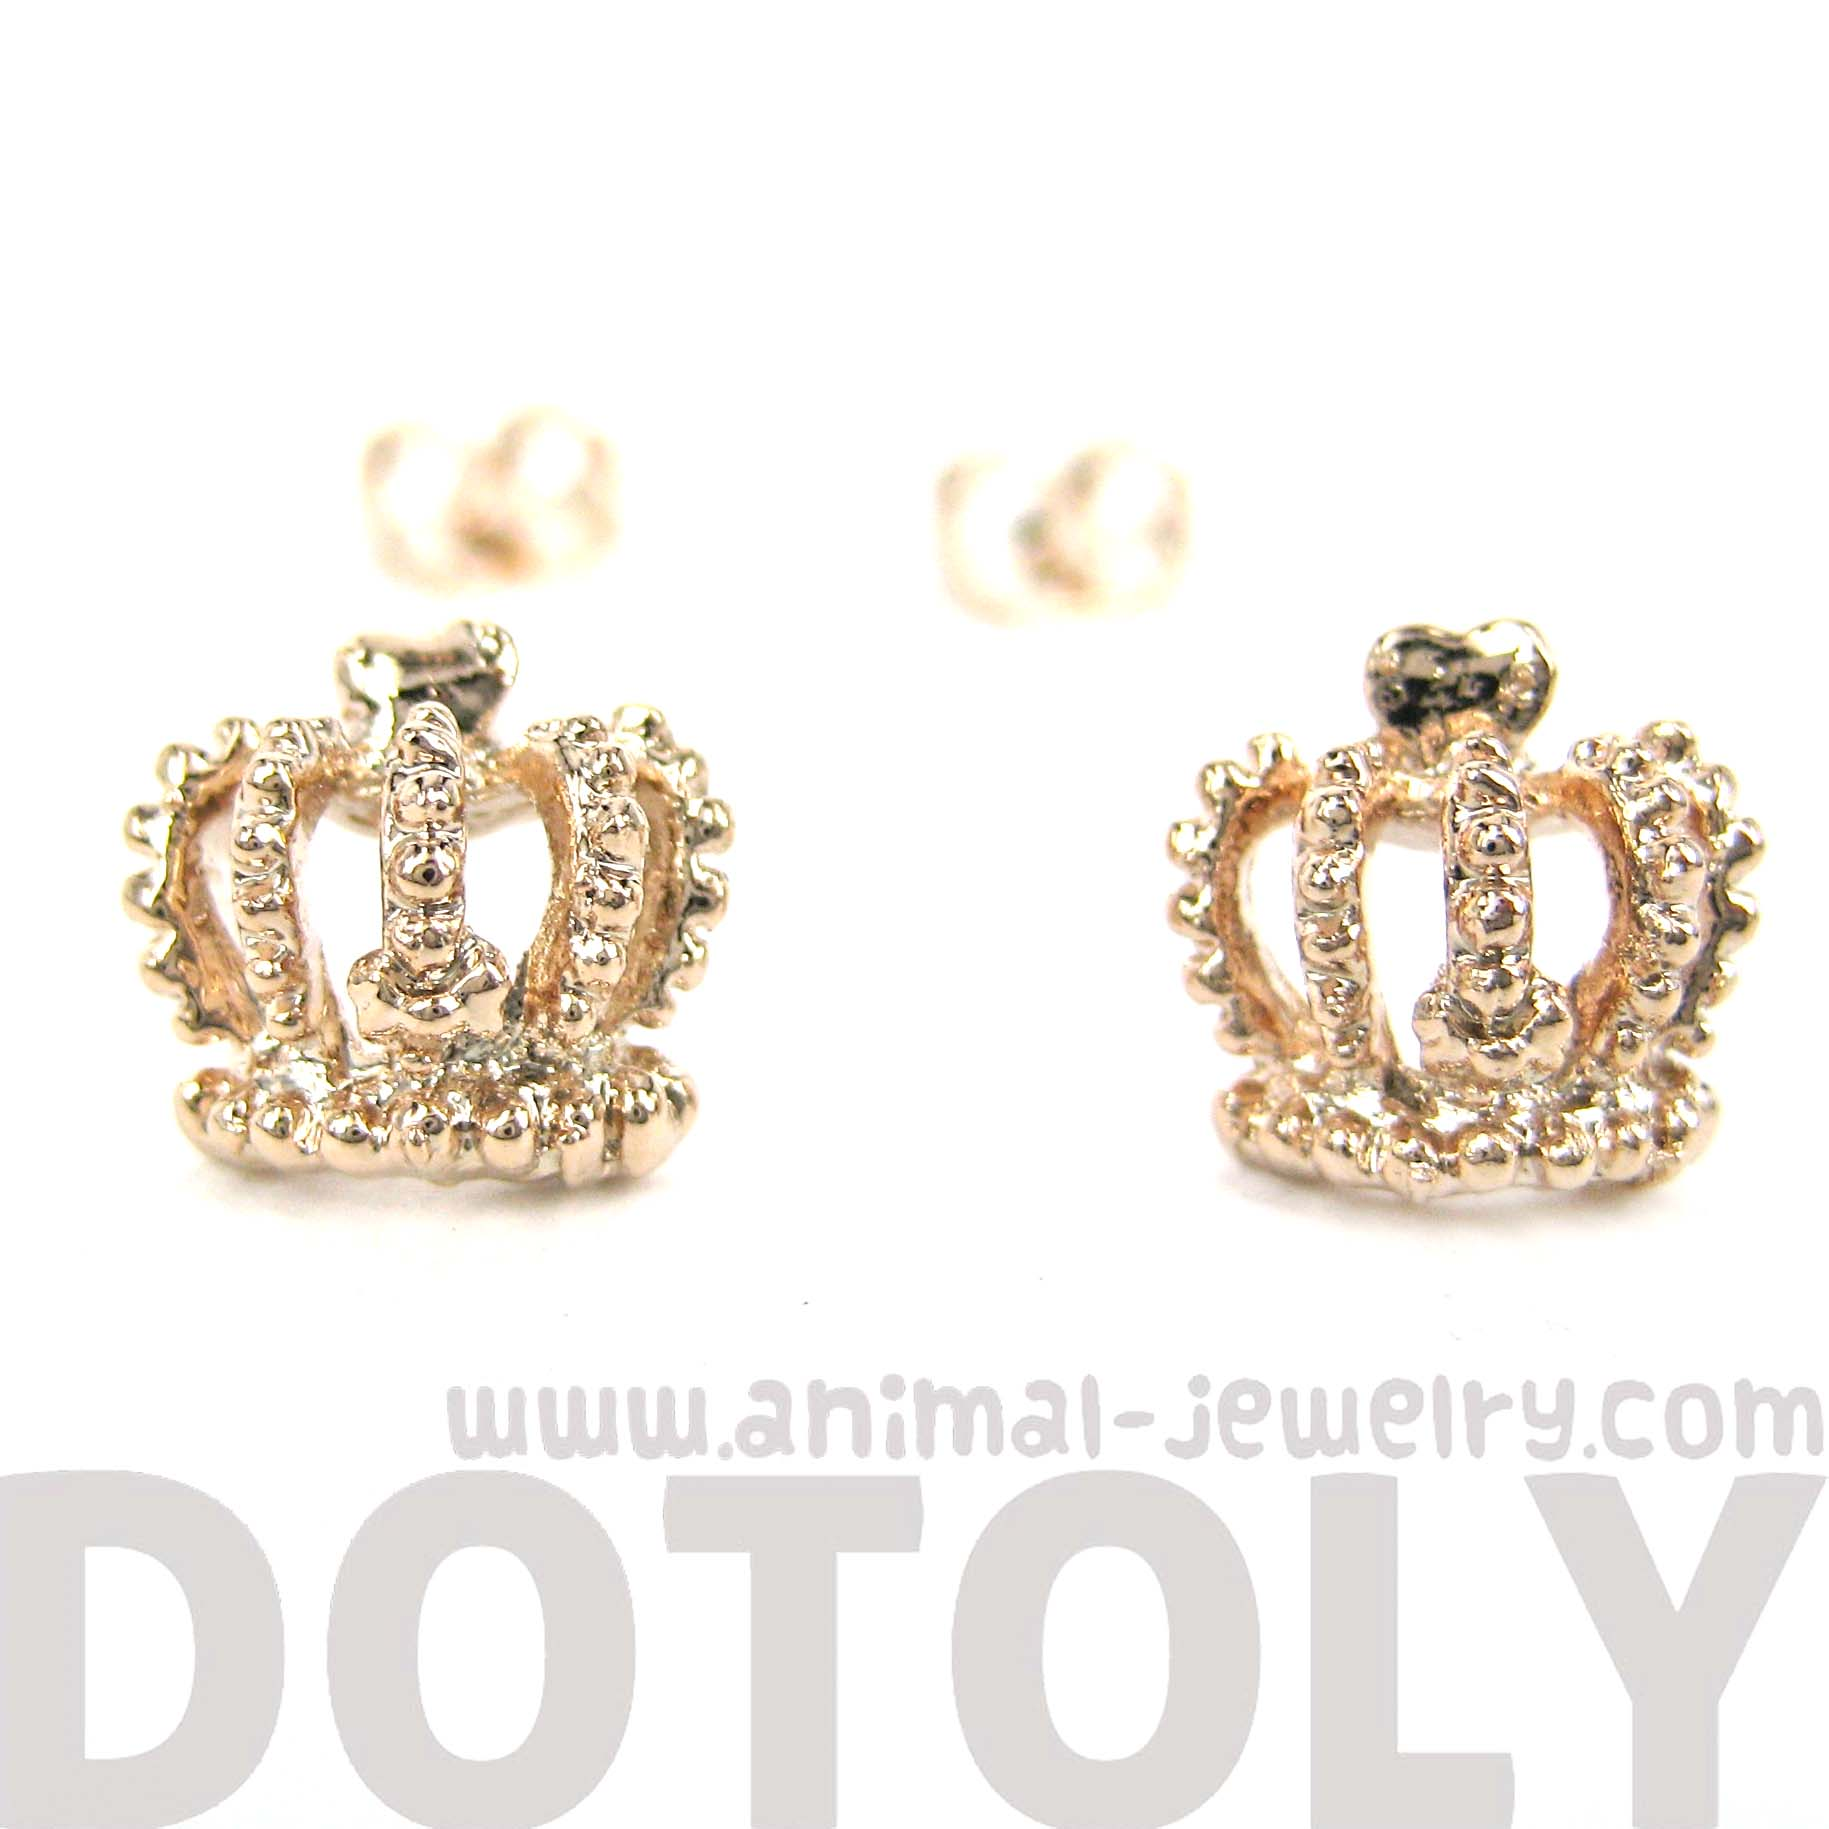 skull stud clothing crown zapps earrings products